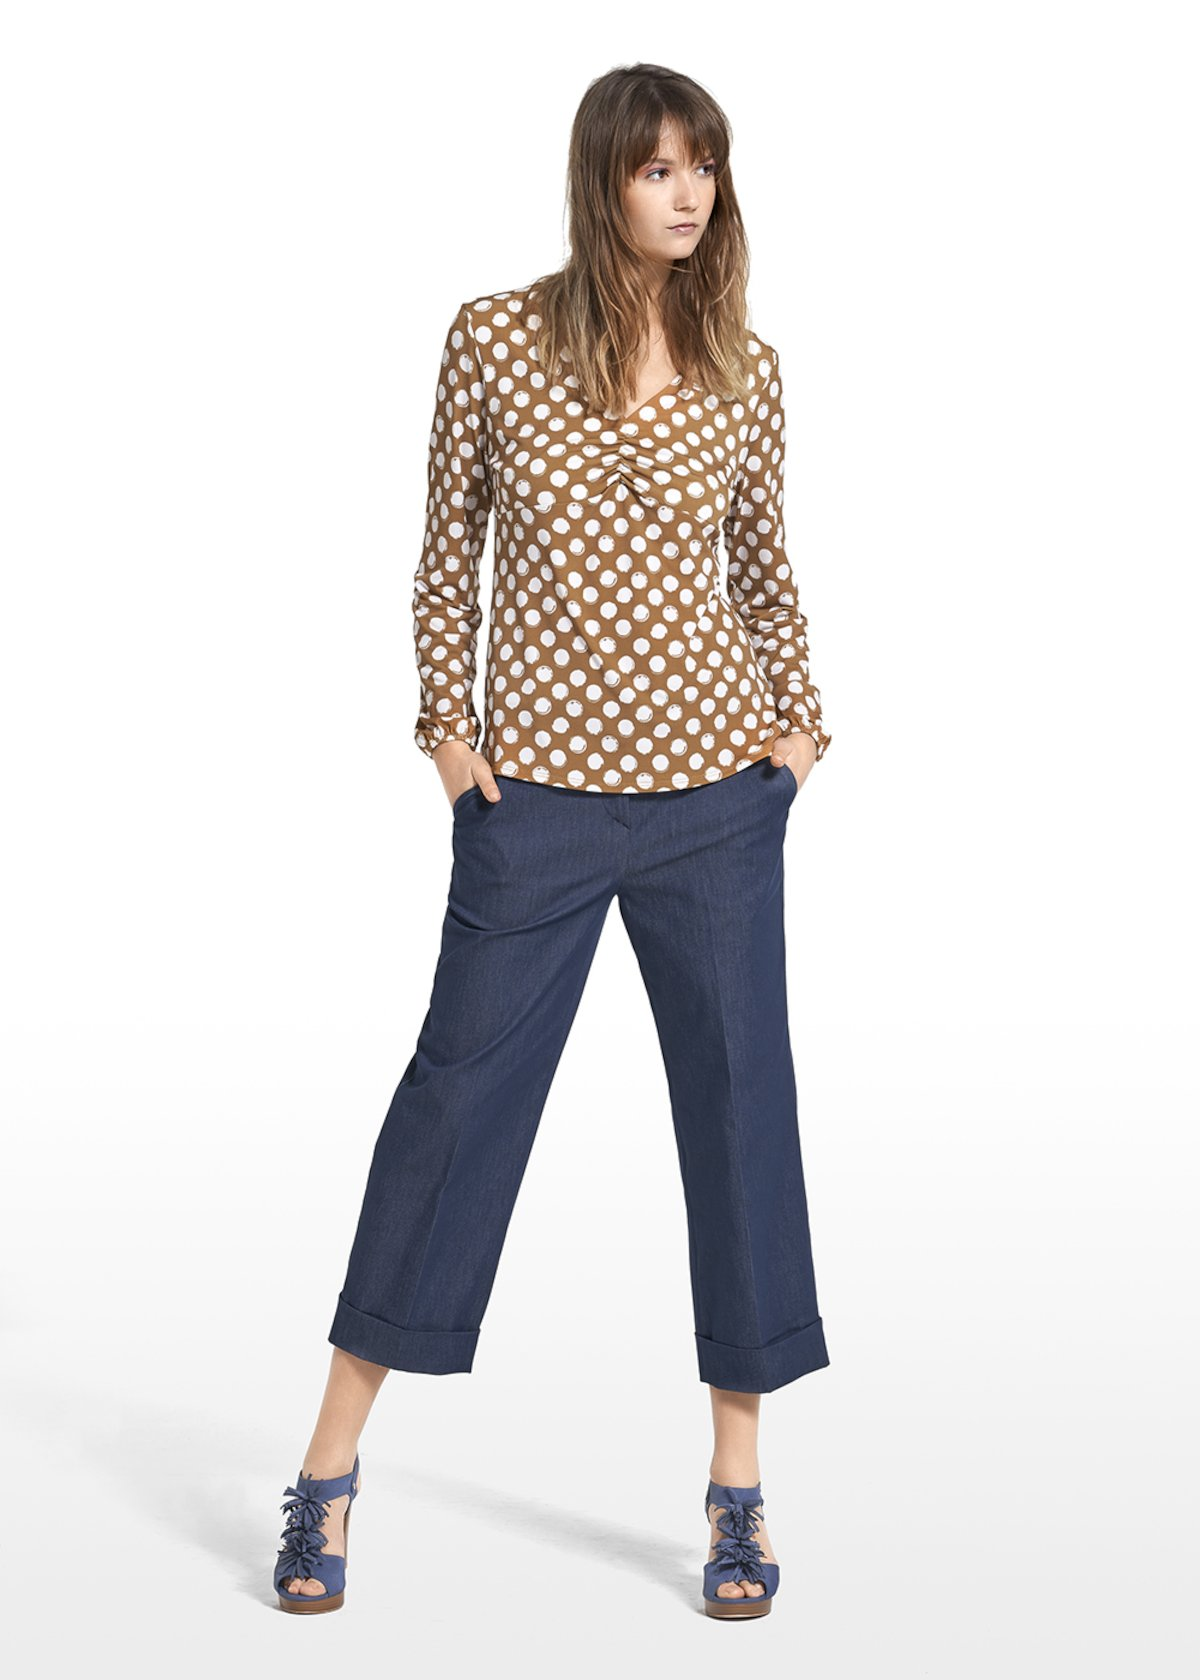 Patterned polka dot on honey-bottom sewater Susan - Miele / White Pois - Woman